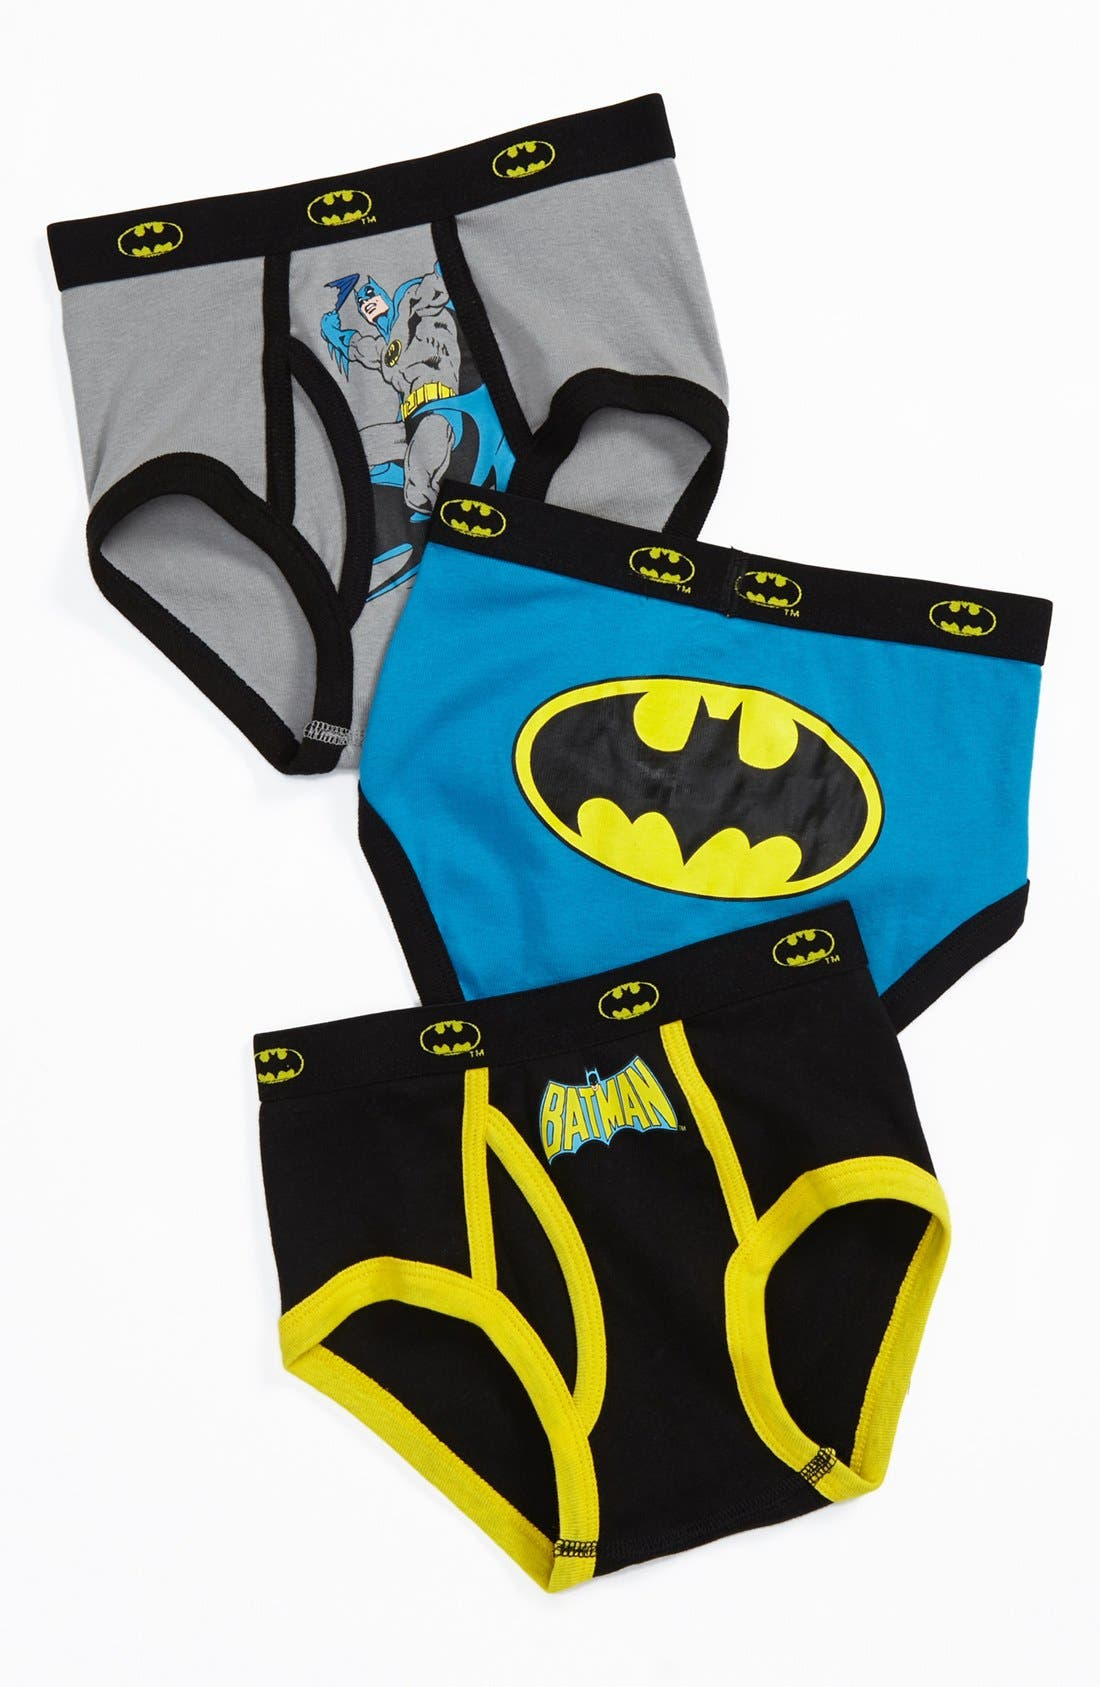 Alternate Image 1 Selected - INTIMO 'Batman' Briefs (3-Pack) (Toddler Boys)